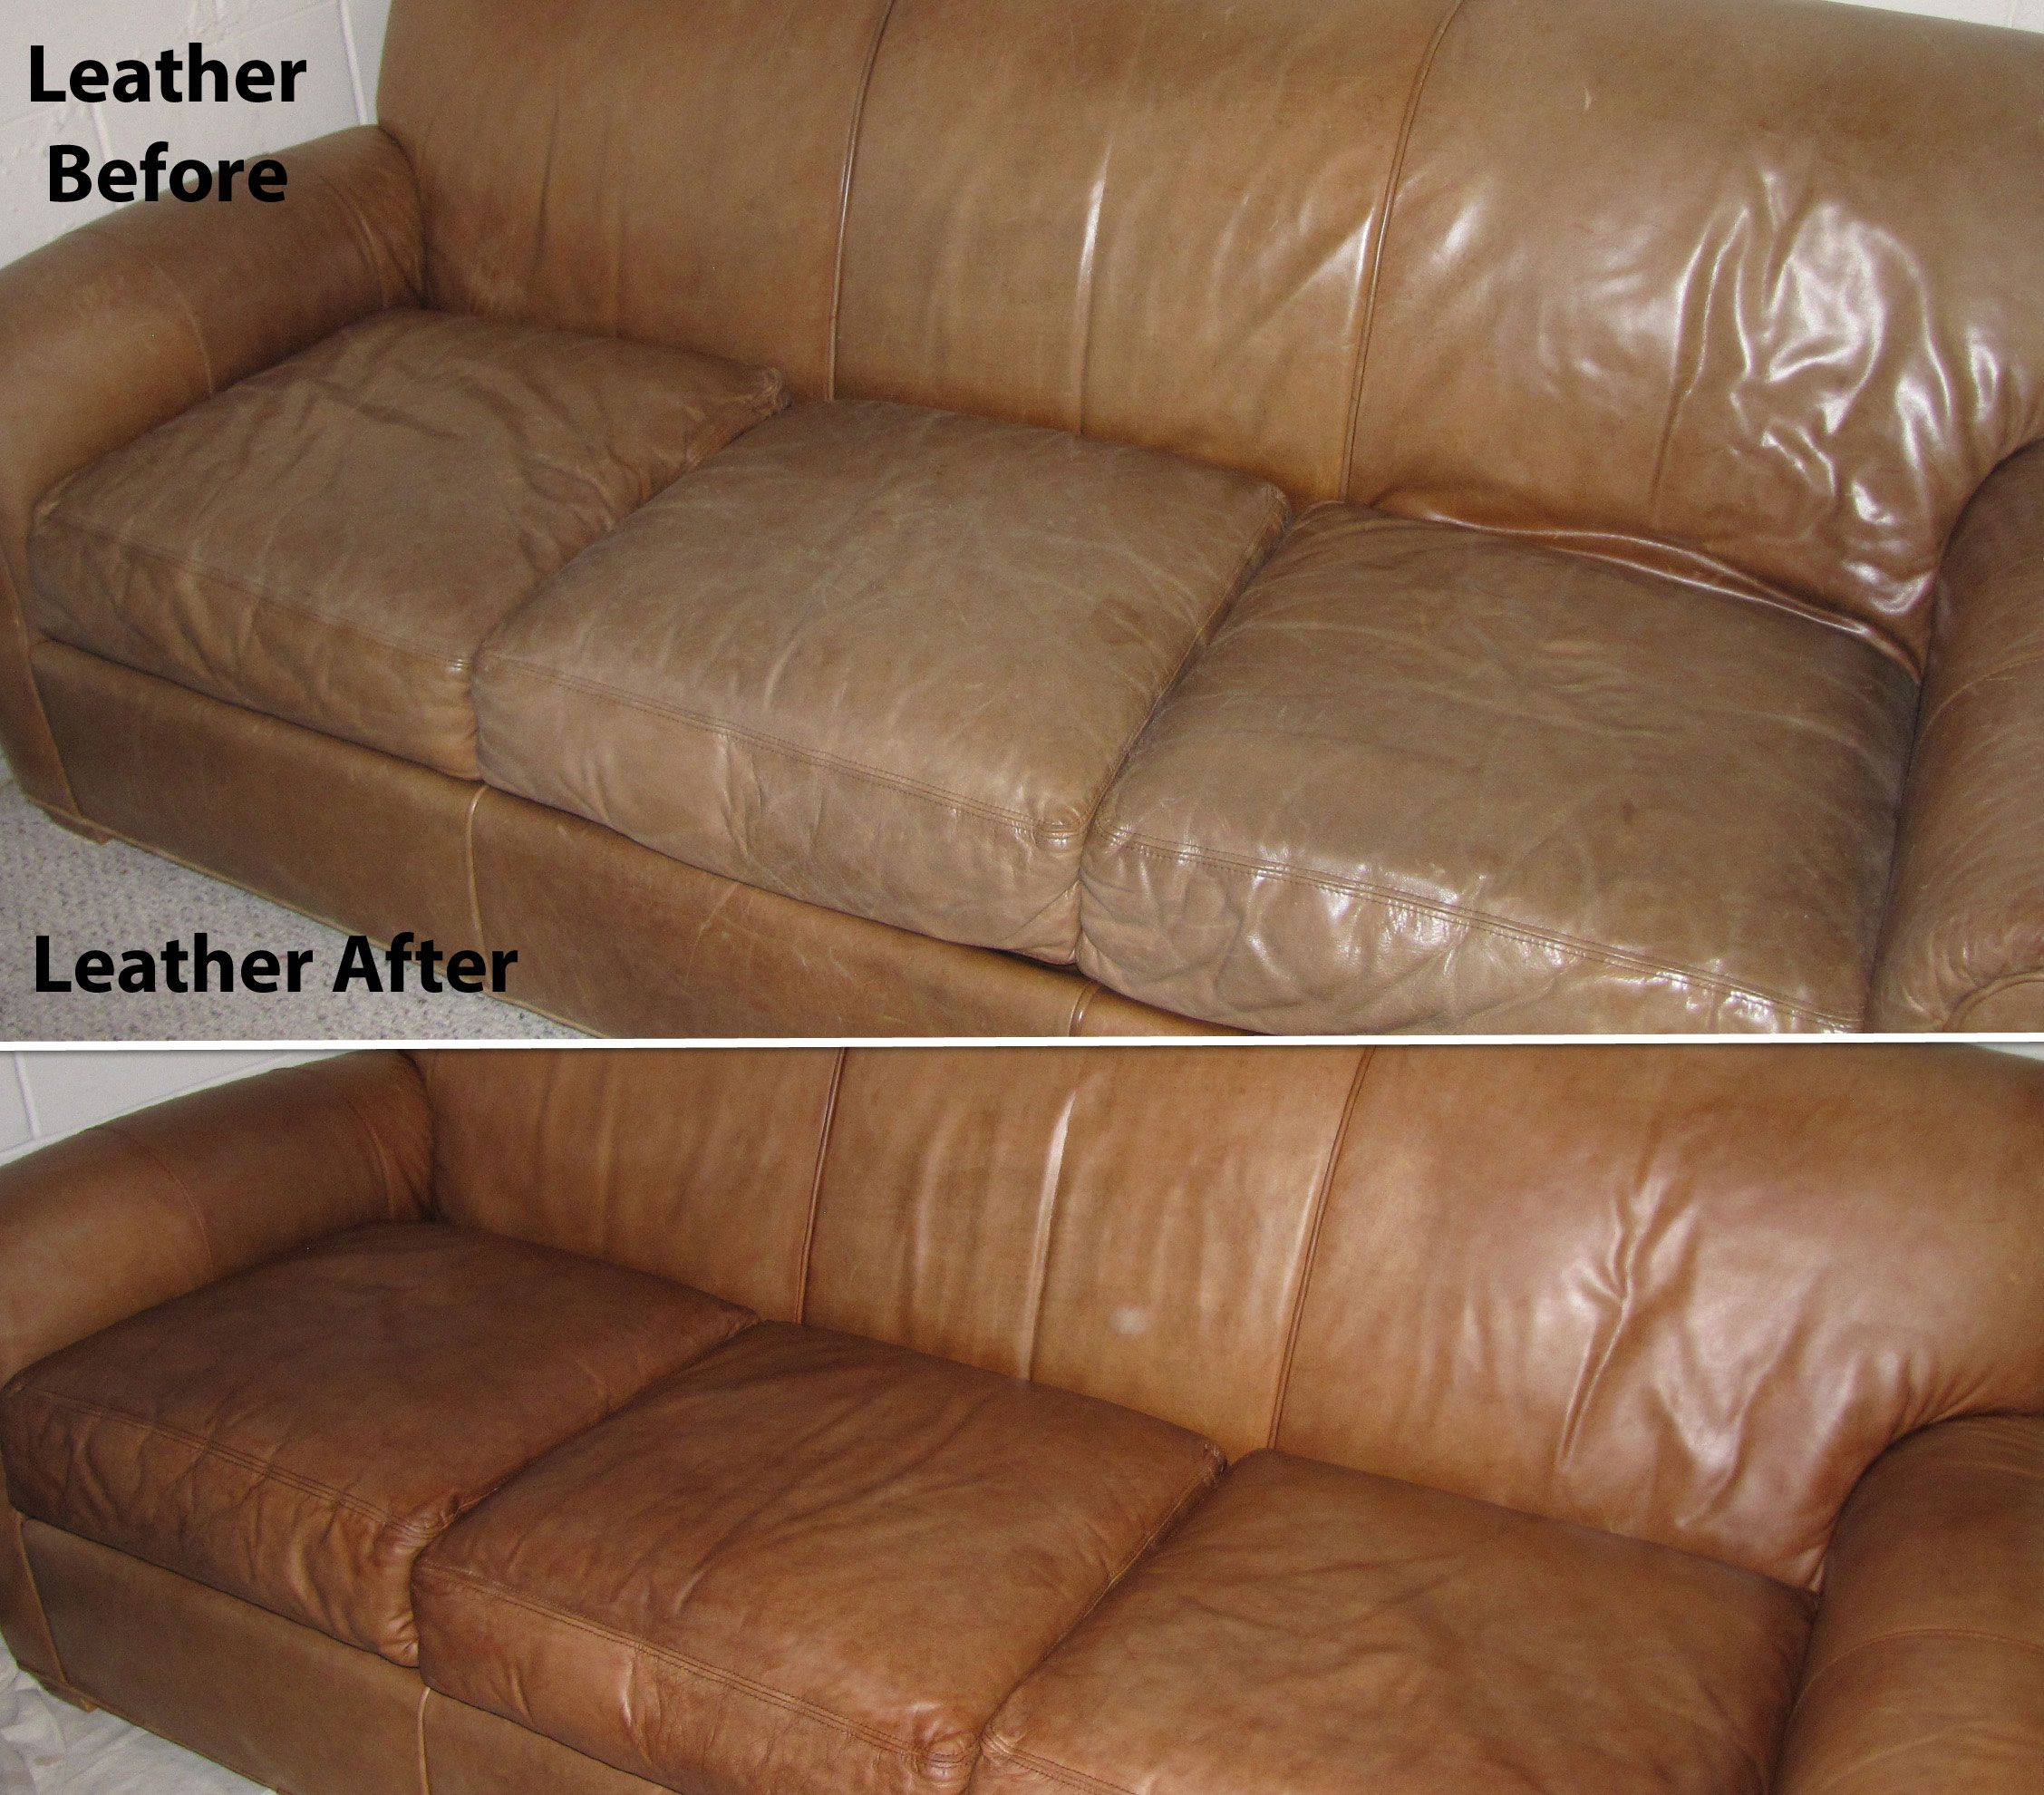 Leather Sofa Dry Cleaning Services Noida White Leather Sofas Leather Sofa Clean Sofa